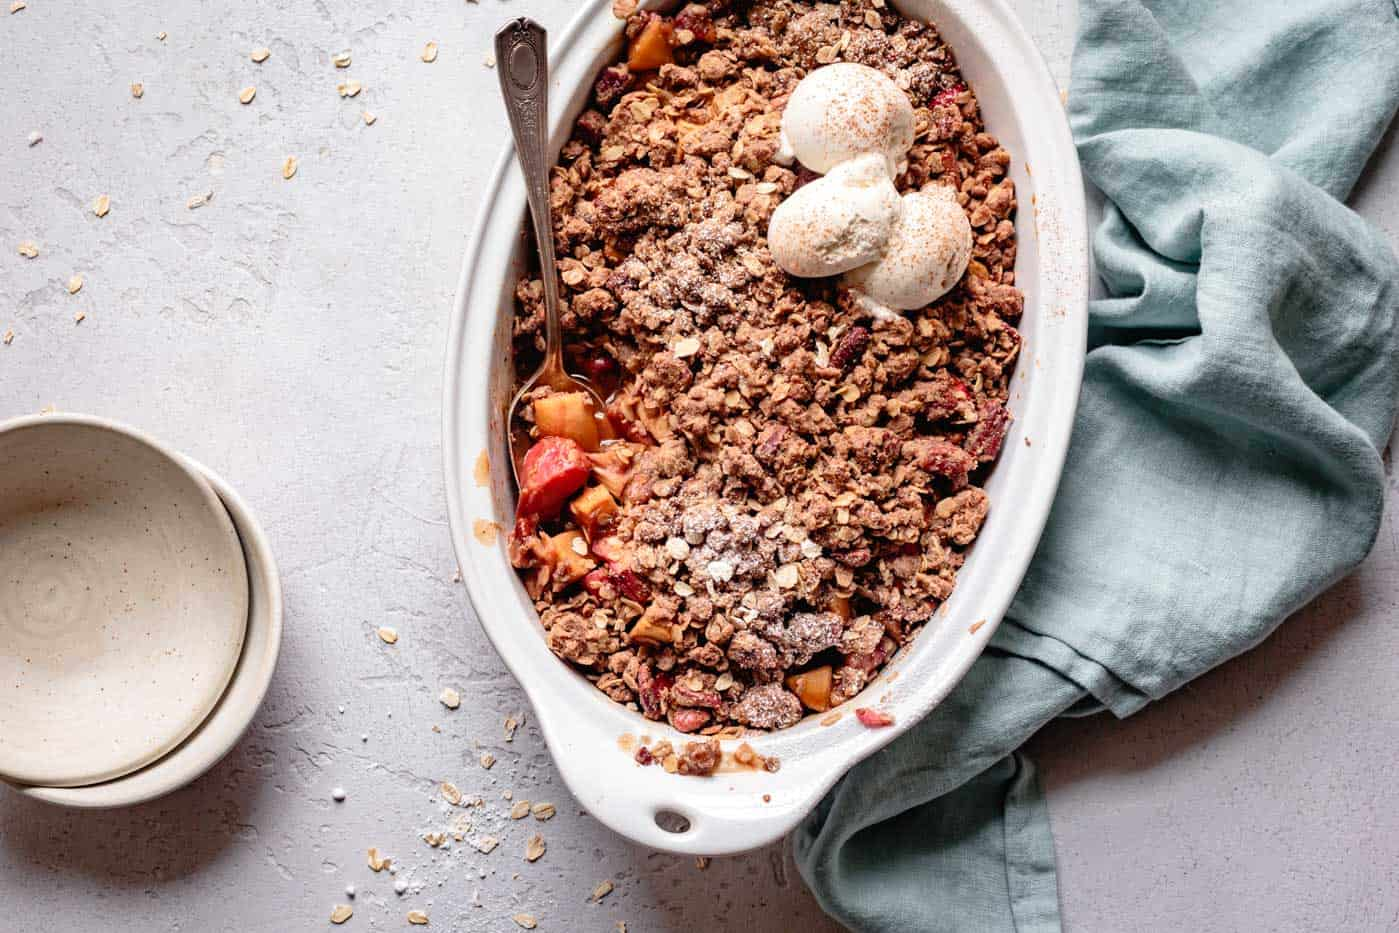 rhubarb apple ginger crumble in a baking dish